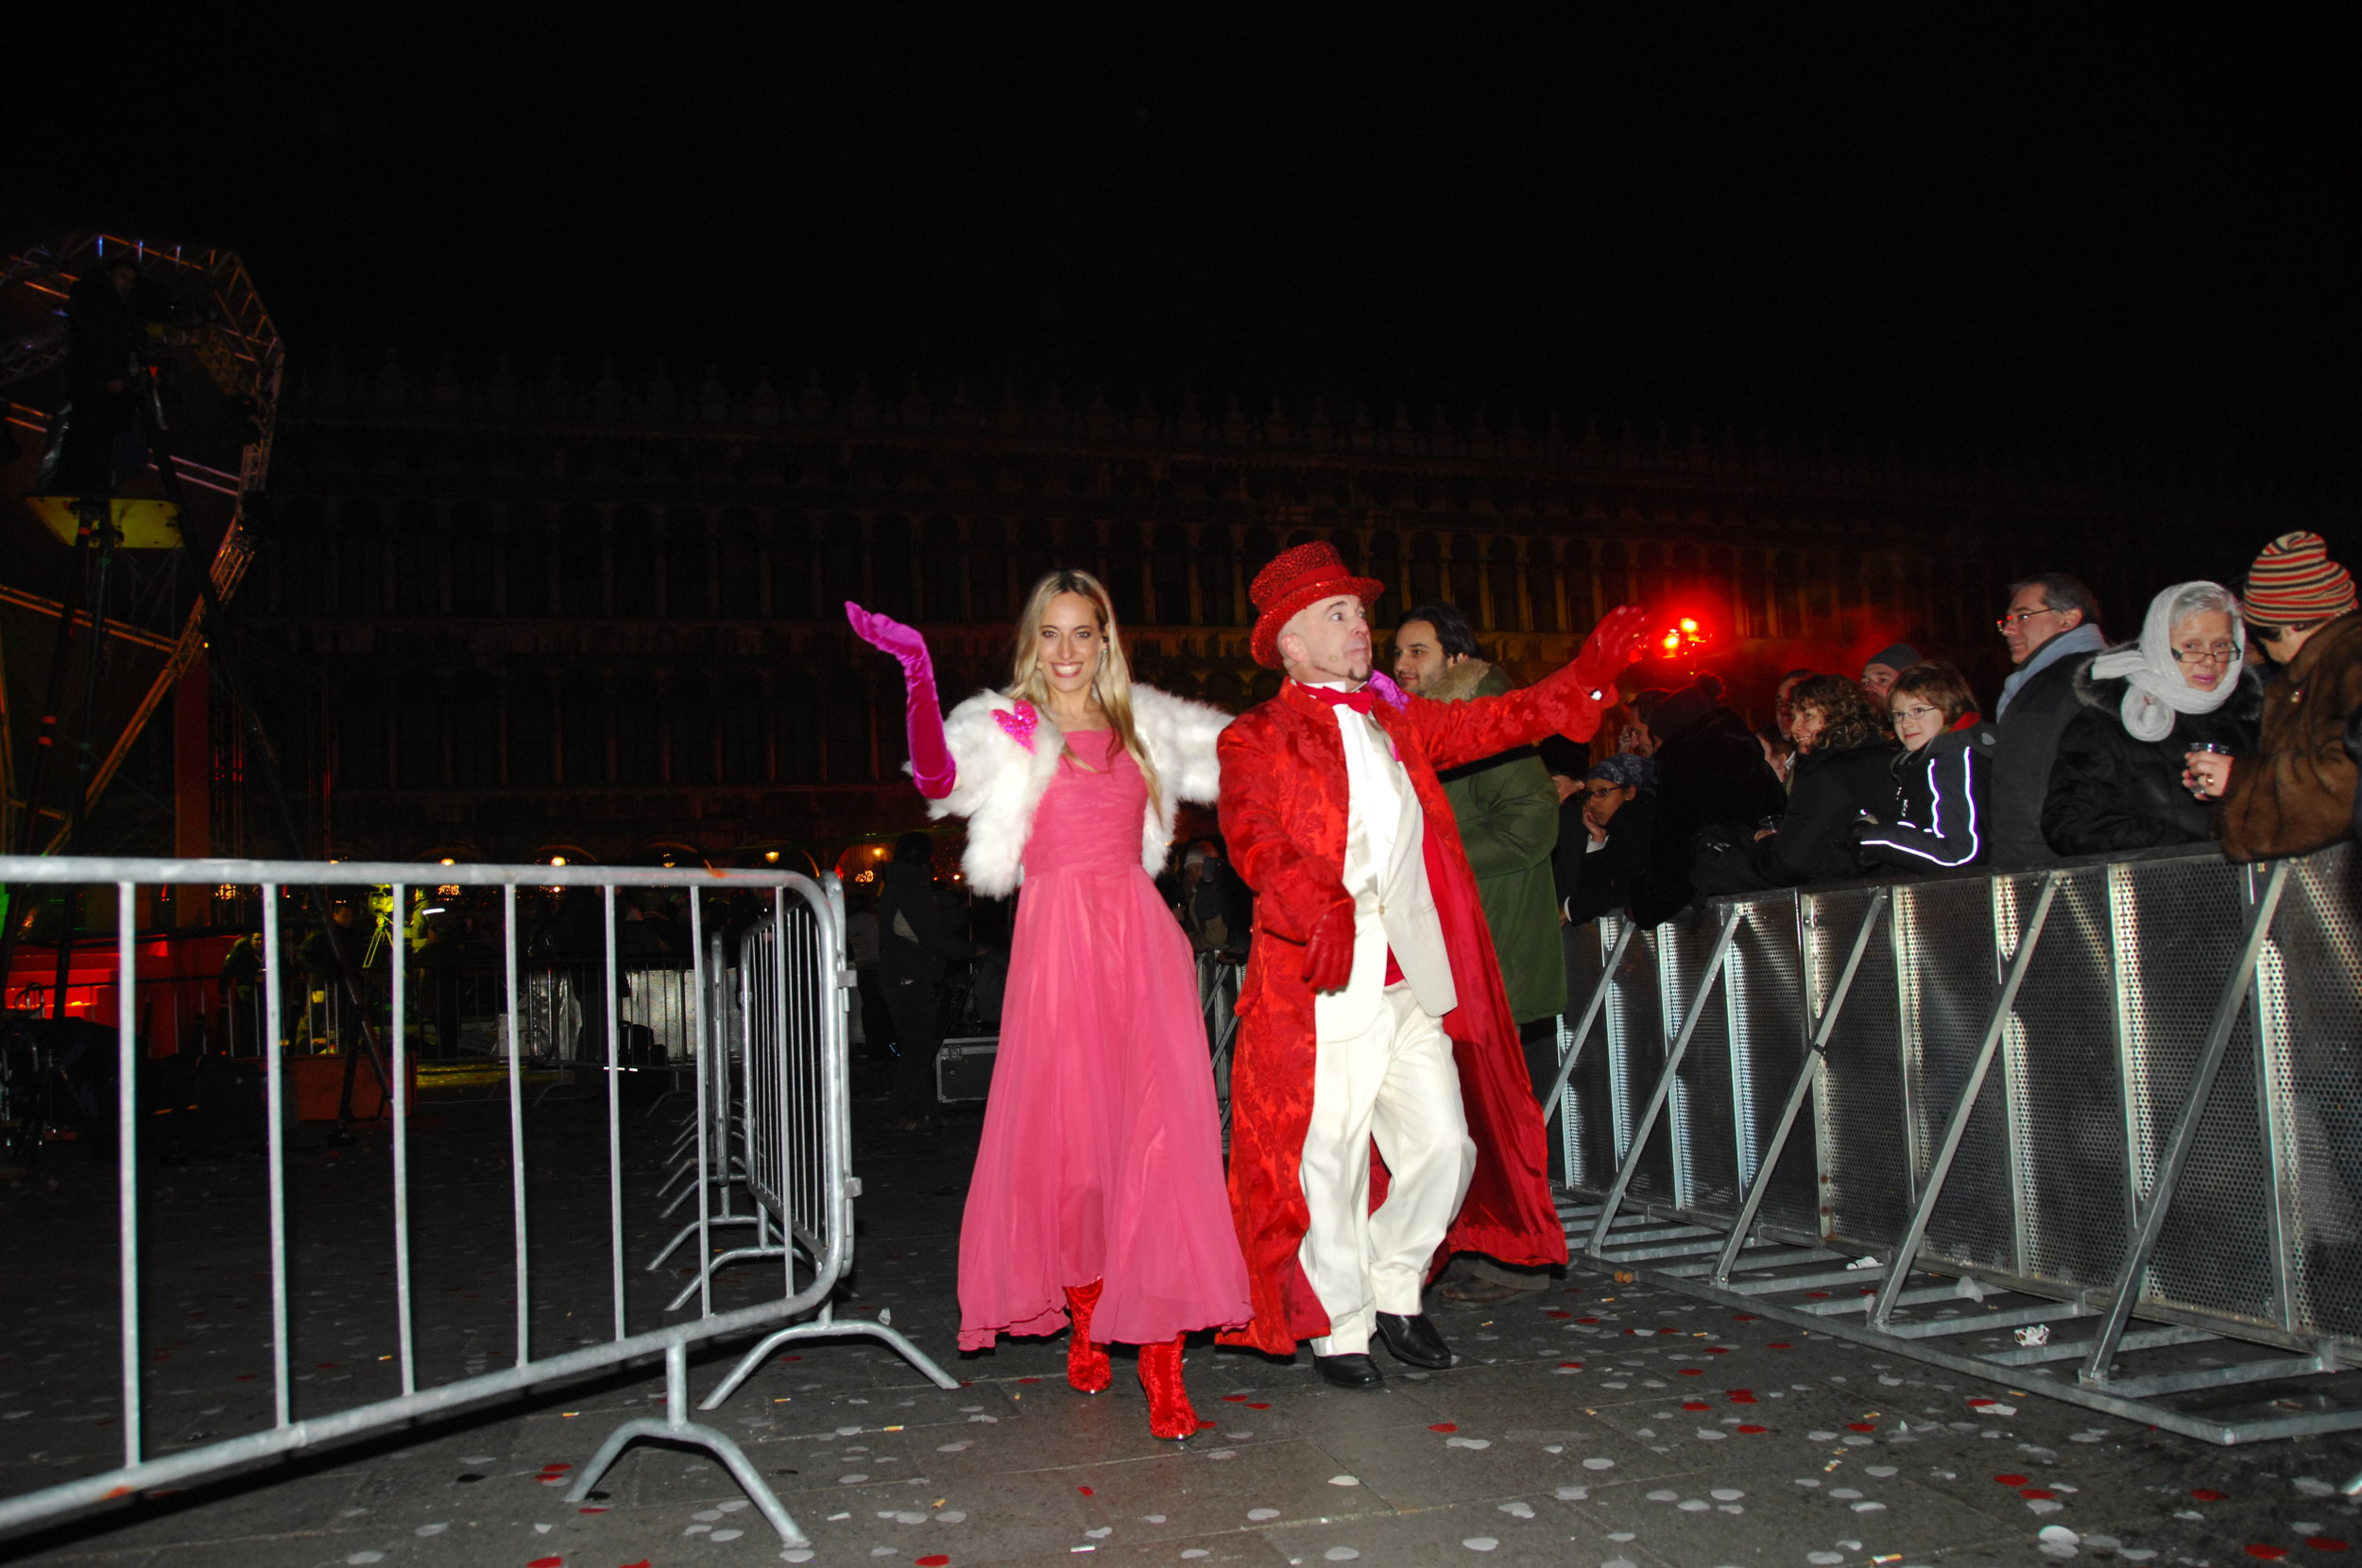 Jessica heading to the stage to host Venice's New Year's Eve bash in St.Mark's Square, with Doug Jack